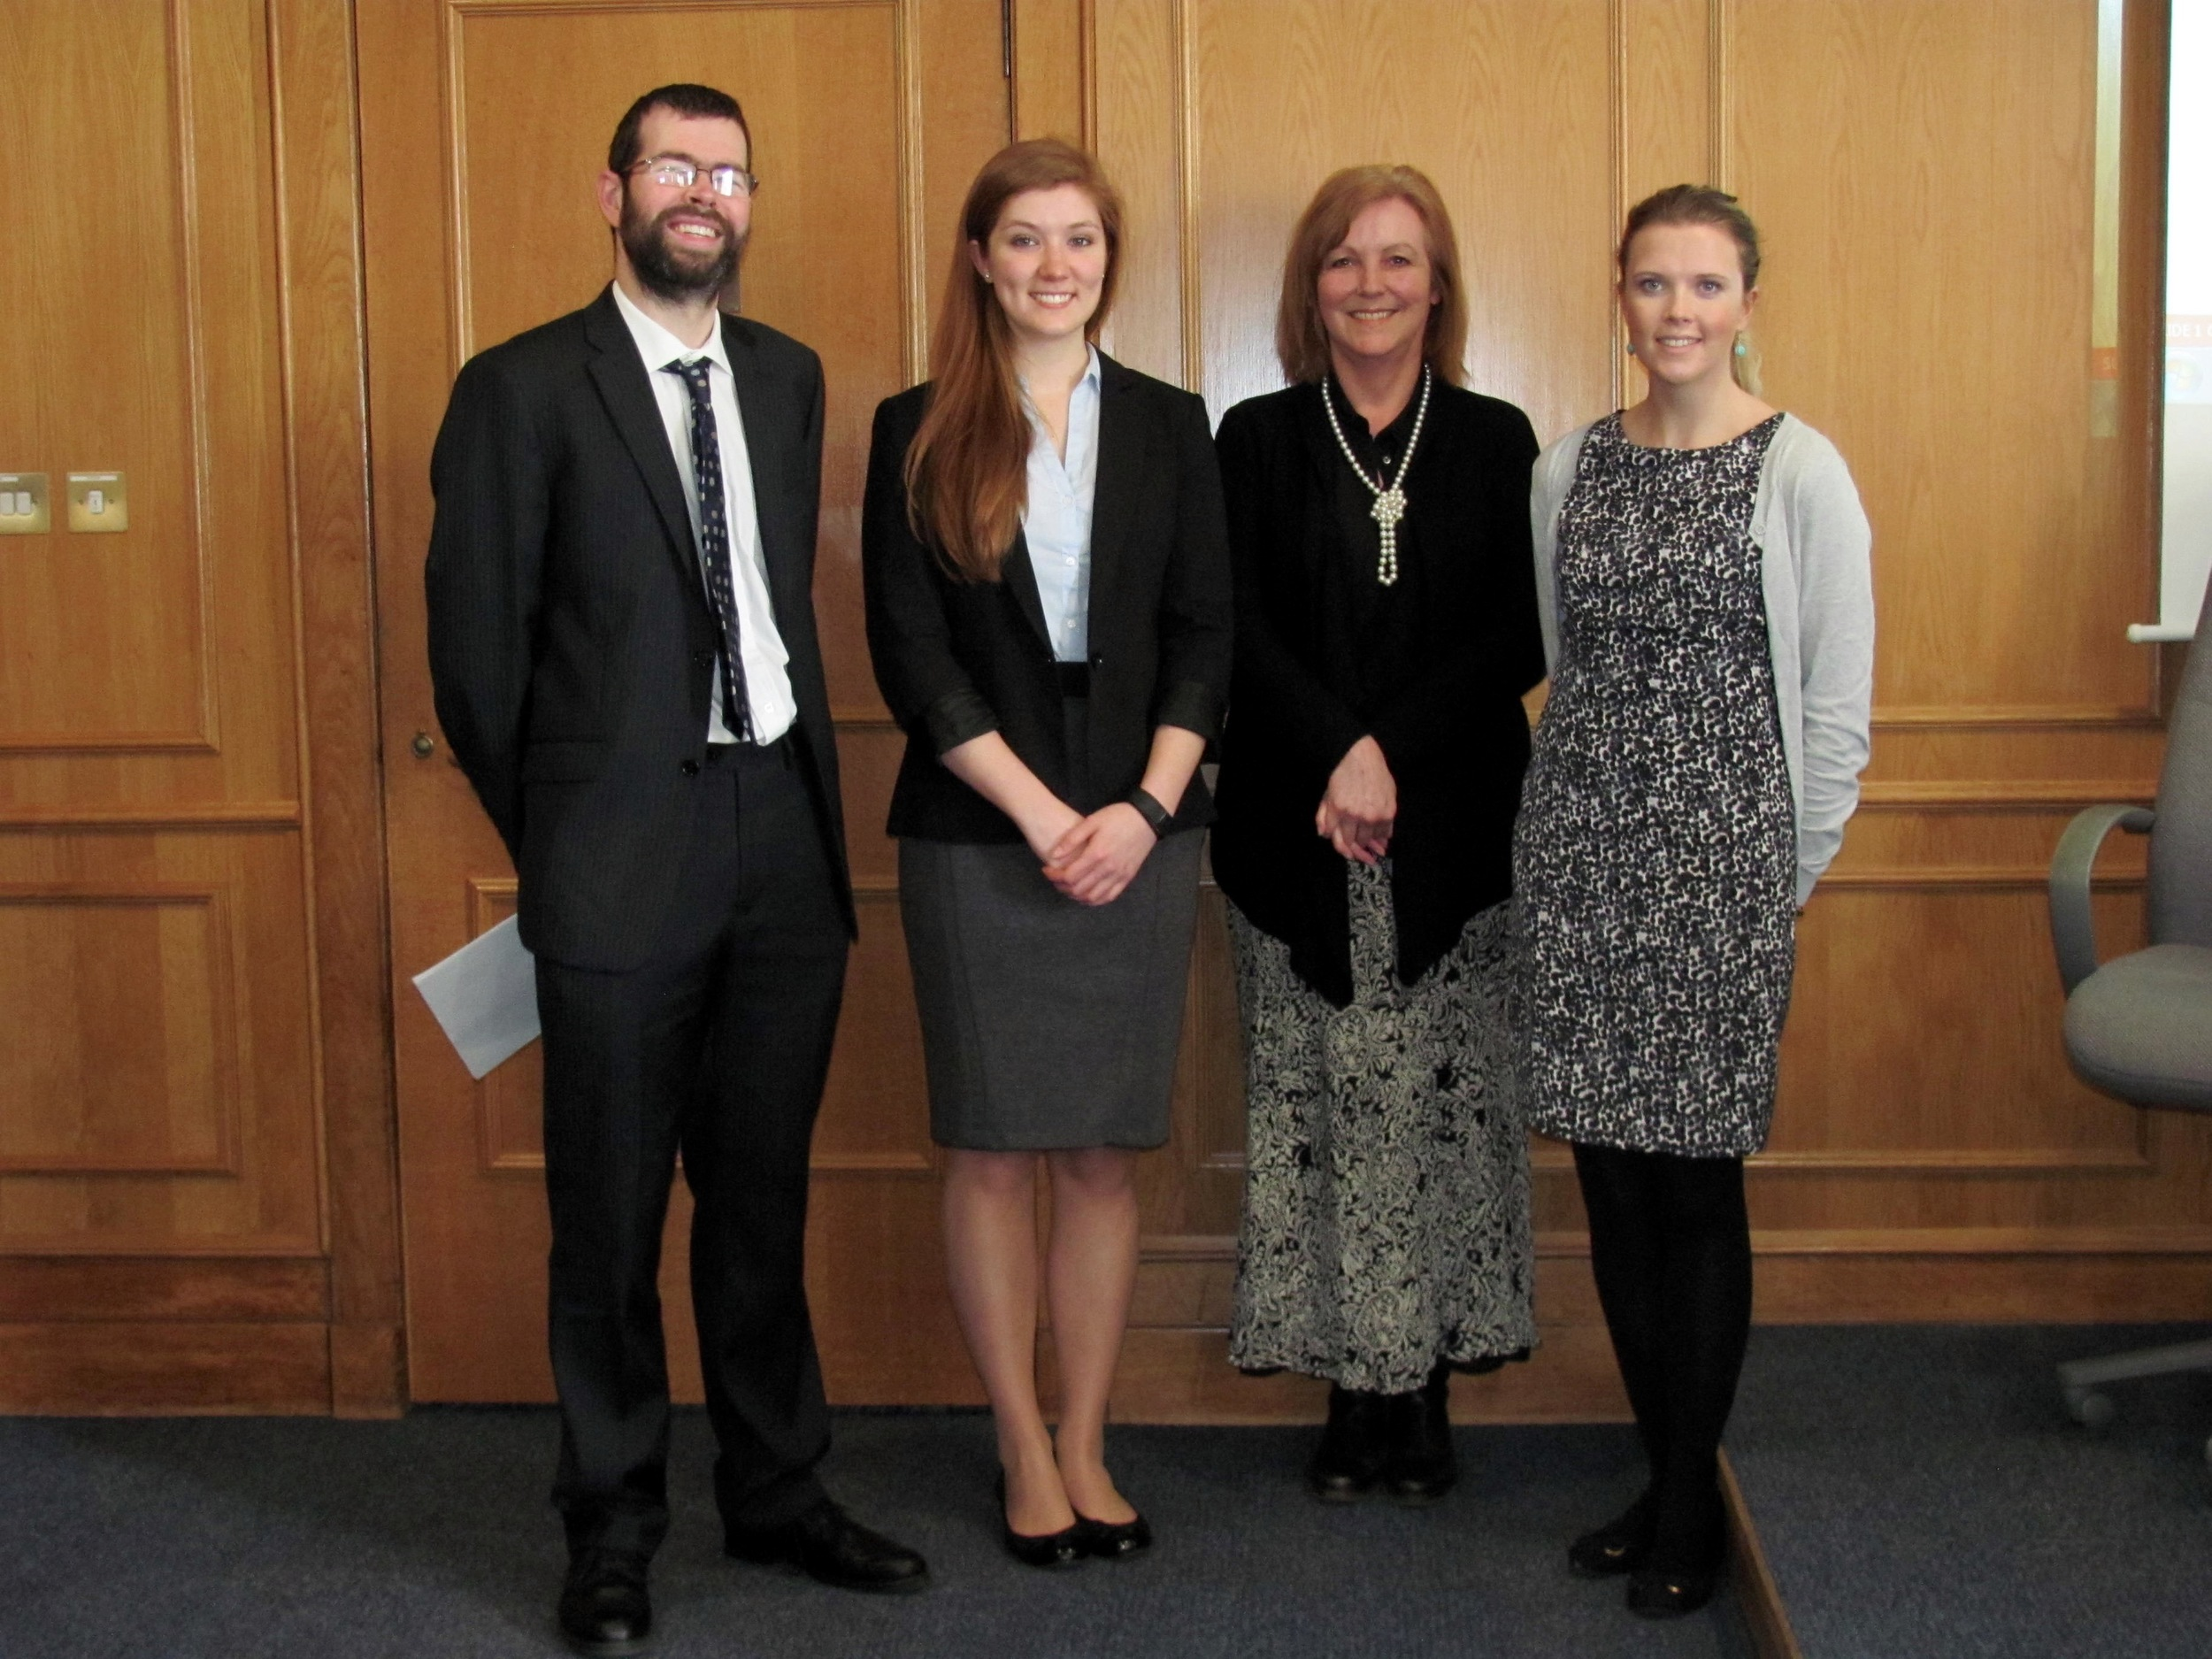 From L: Malcolm Combe (Faculty Director),  Georgia Fotheringham (Deputy Student Director), Julie Price (Guest Speaker)and Lindsay McCormick (Student Director).